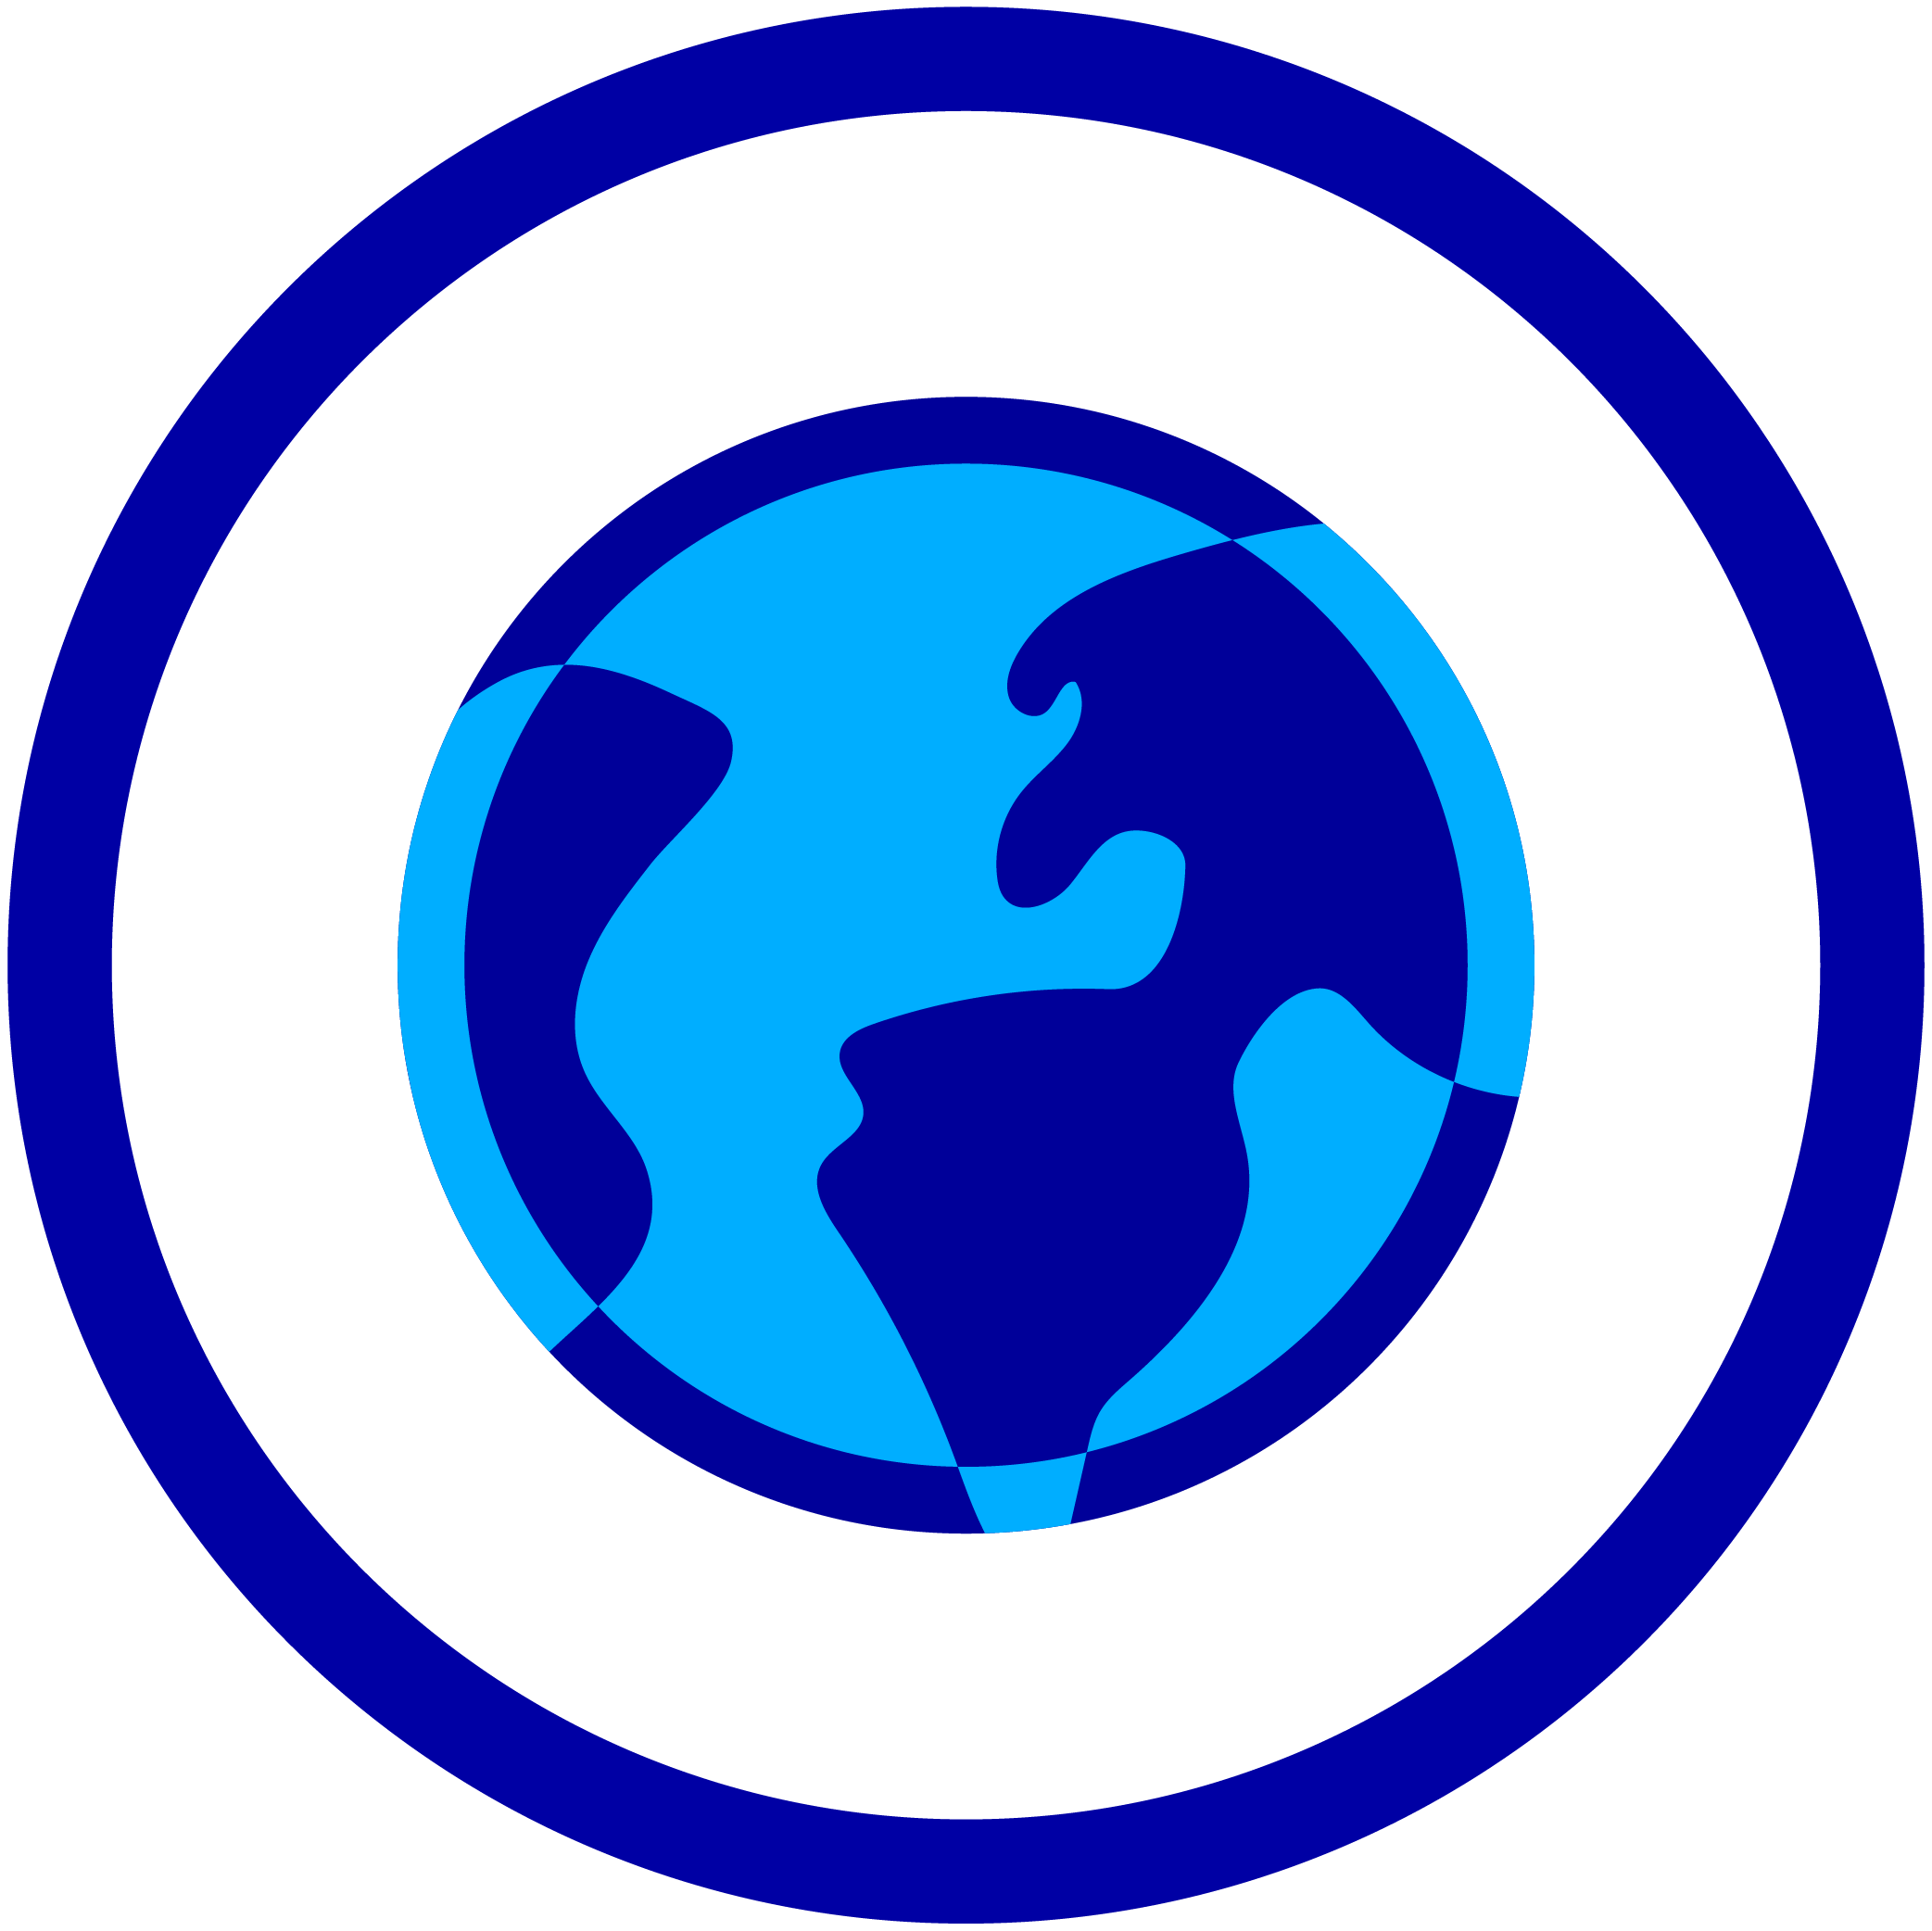 https://us.fi-group.com/wp-content/uploads/sites/16/2021/02/blue-icons-set_1-13.png